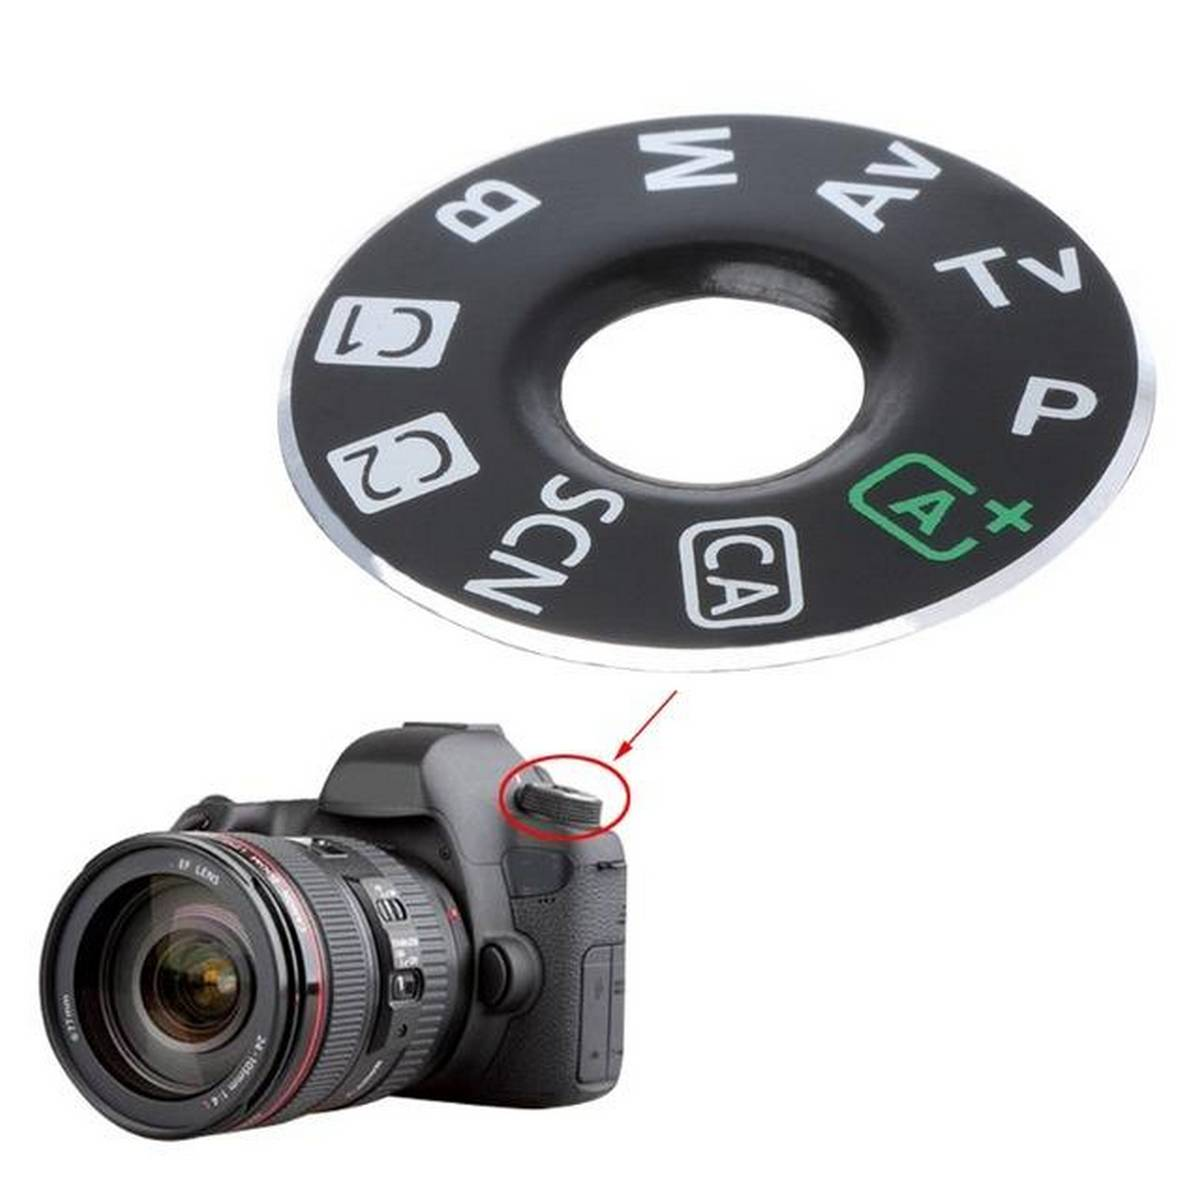 Dail Mode Plate Interface Cap For Canon EOS 6D Digital Camera Replacement Part